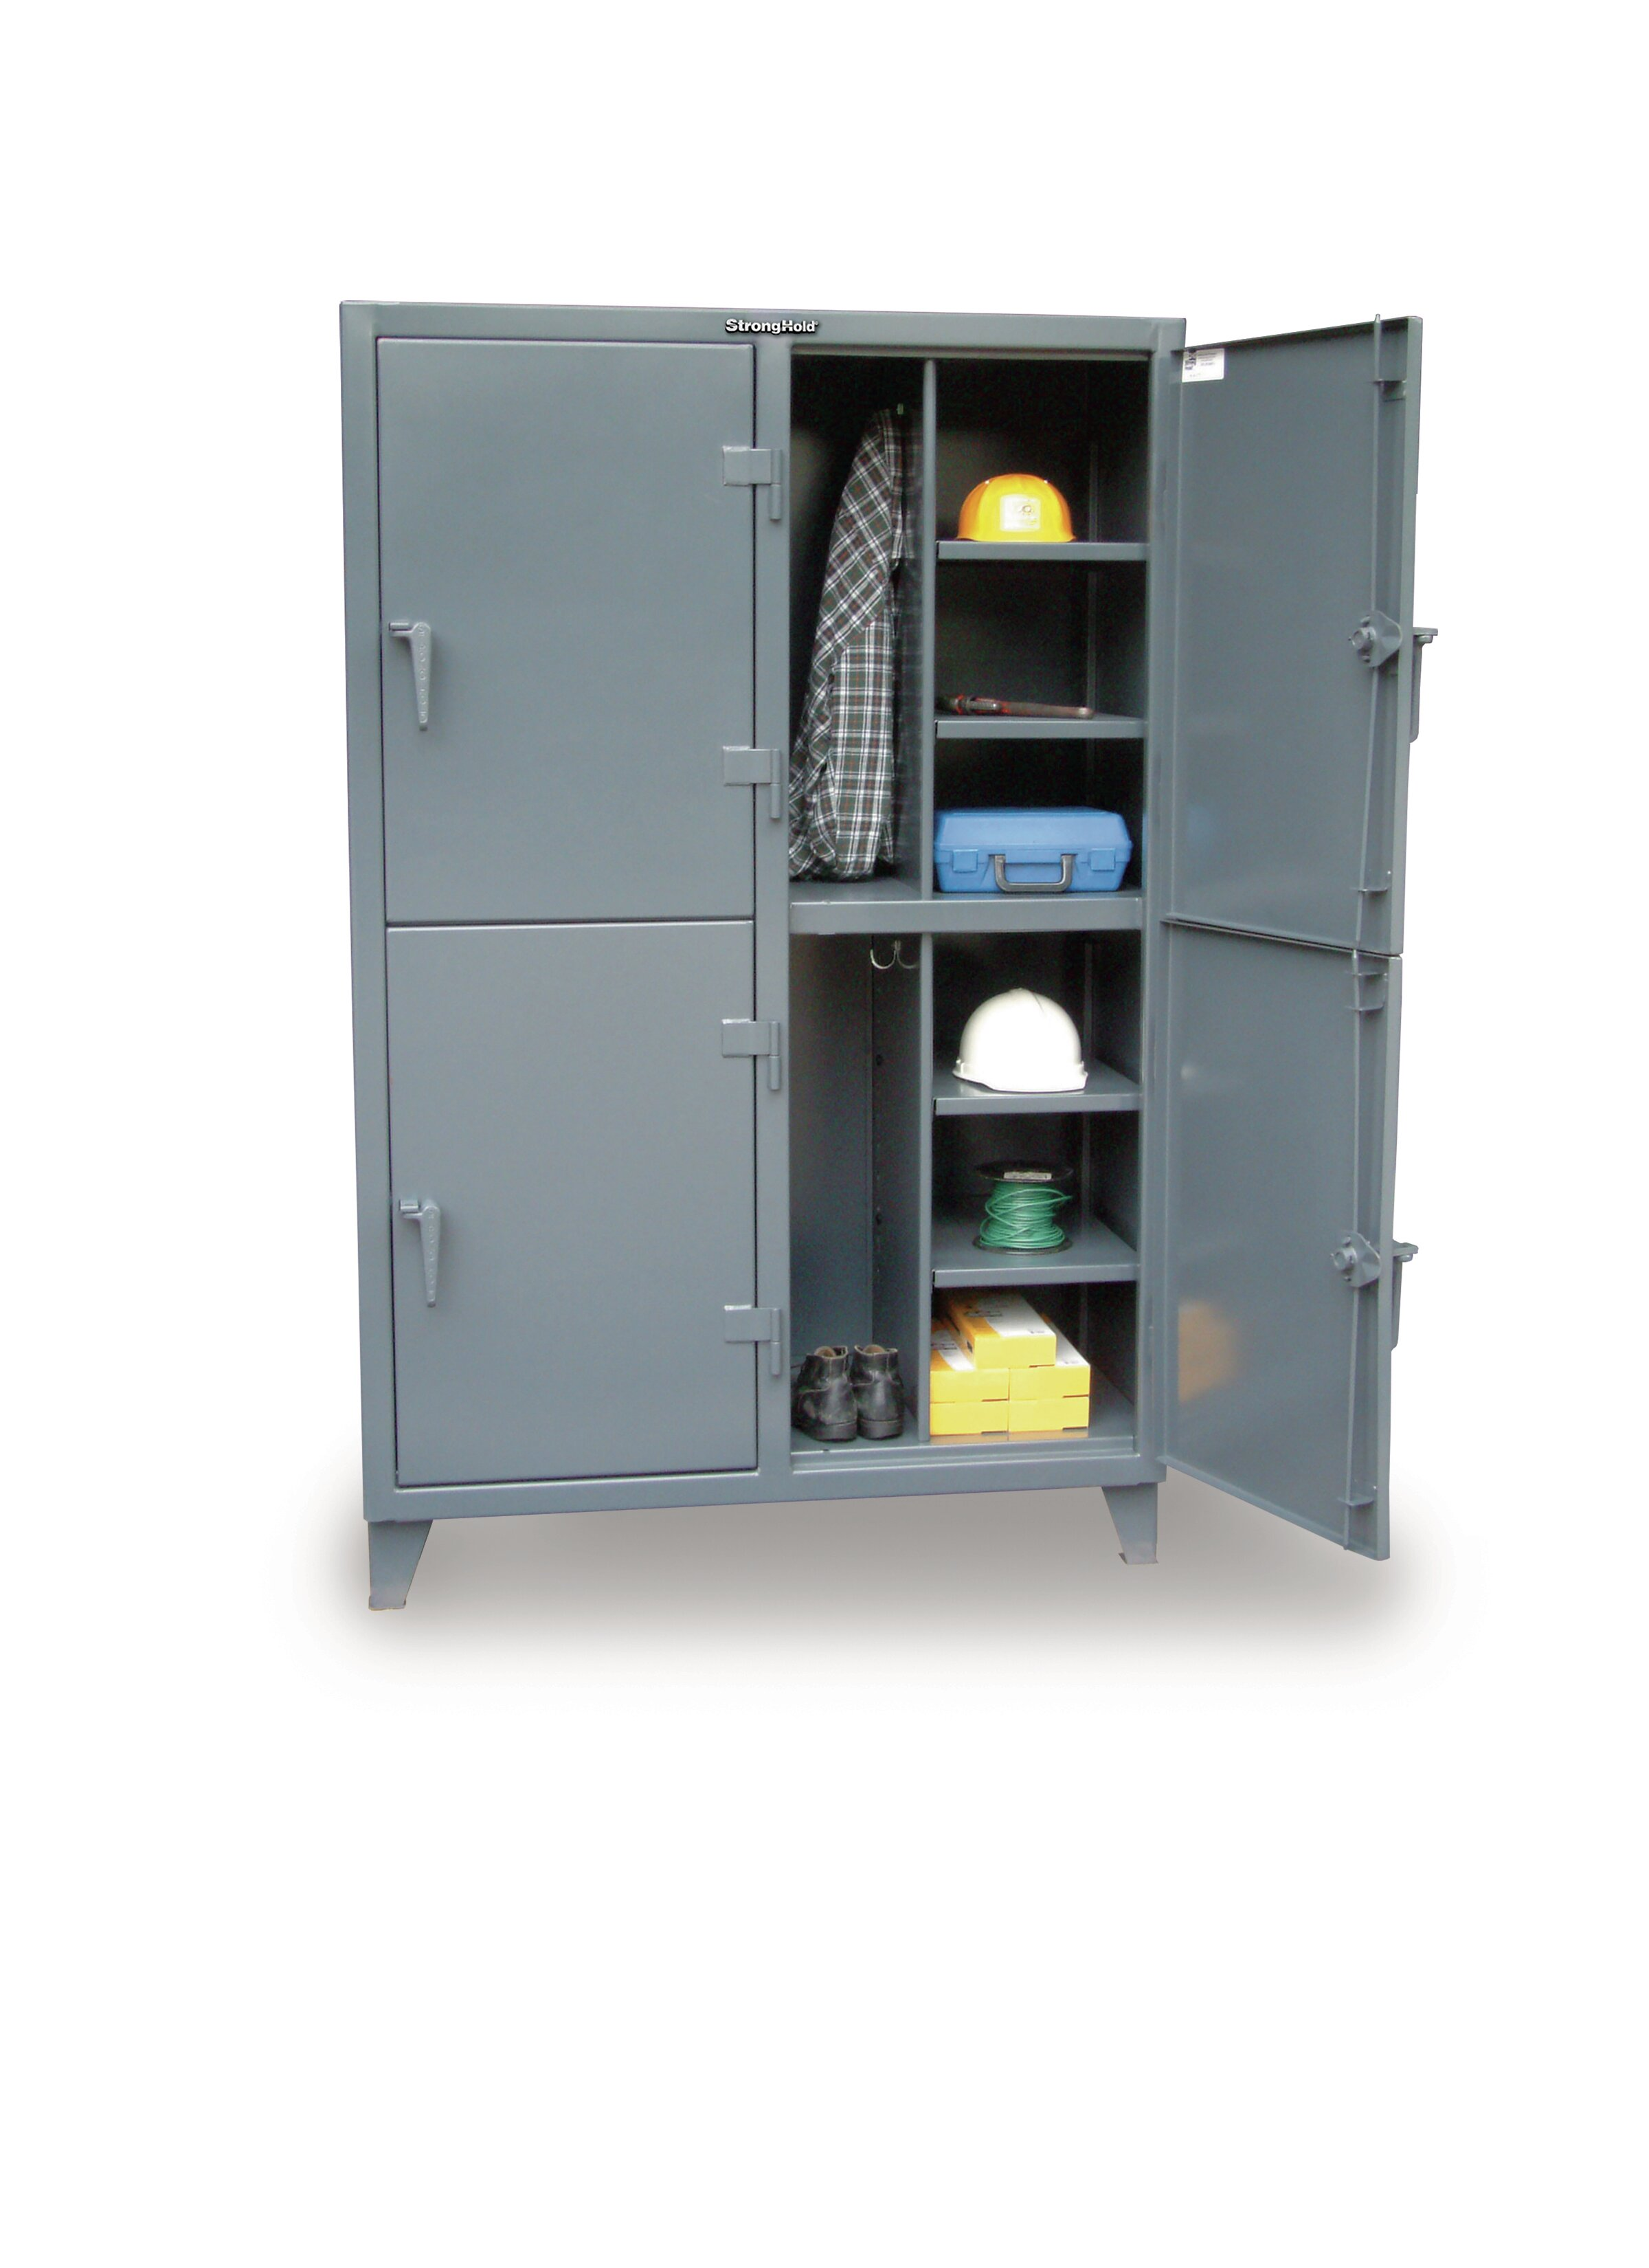 sc 1 st  Wayfair & Strong Hold Products 2 Tier 2 Wide Employee Lockers   Wayfair